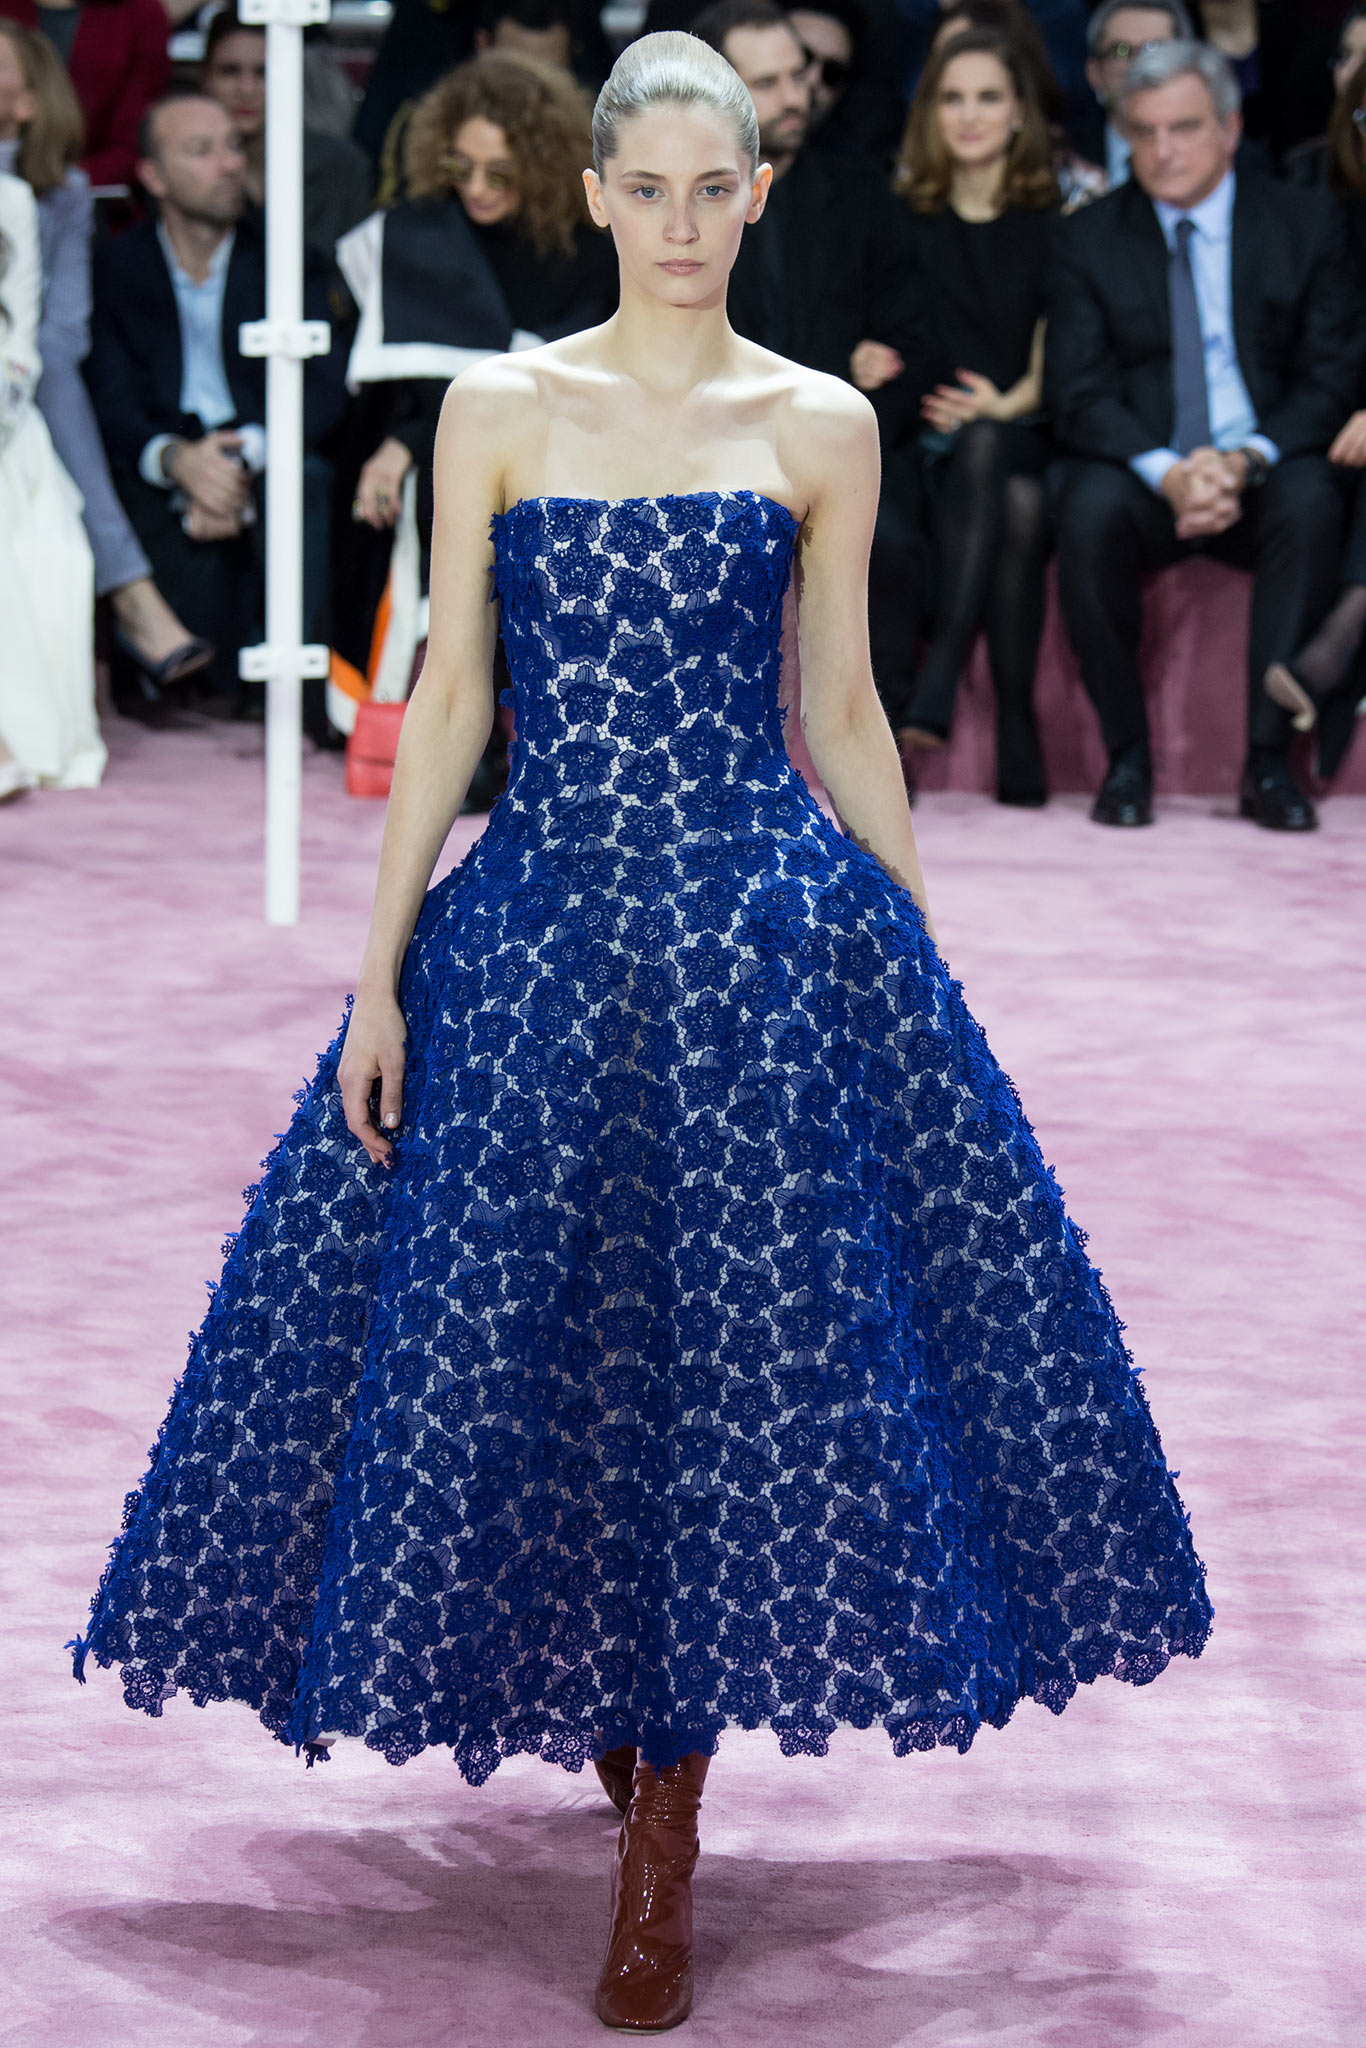 From Dior's Spring 2015 Collection